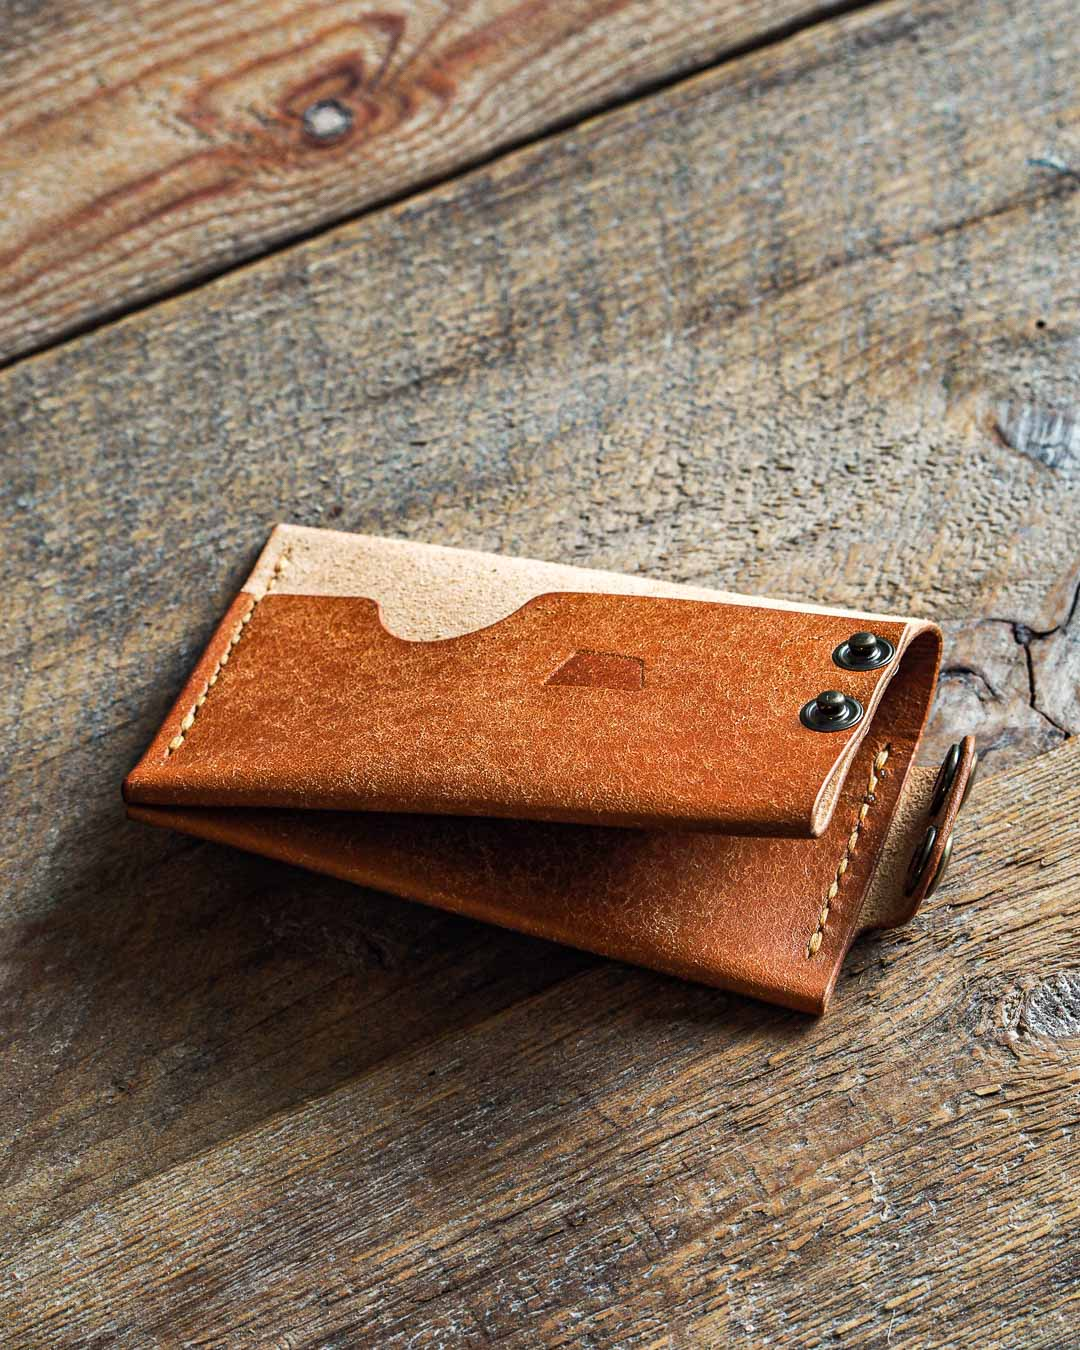 Luava handmade leather wallet handcrafted card holder cardholder made in finland flat badalassi carlo pueblo cognac front open angle